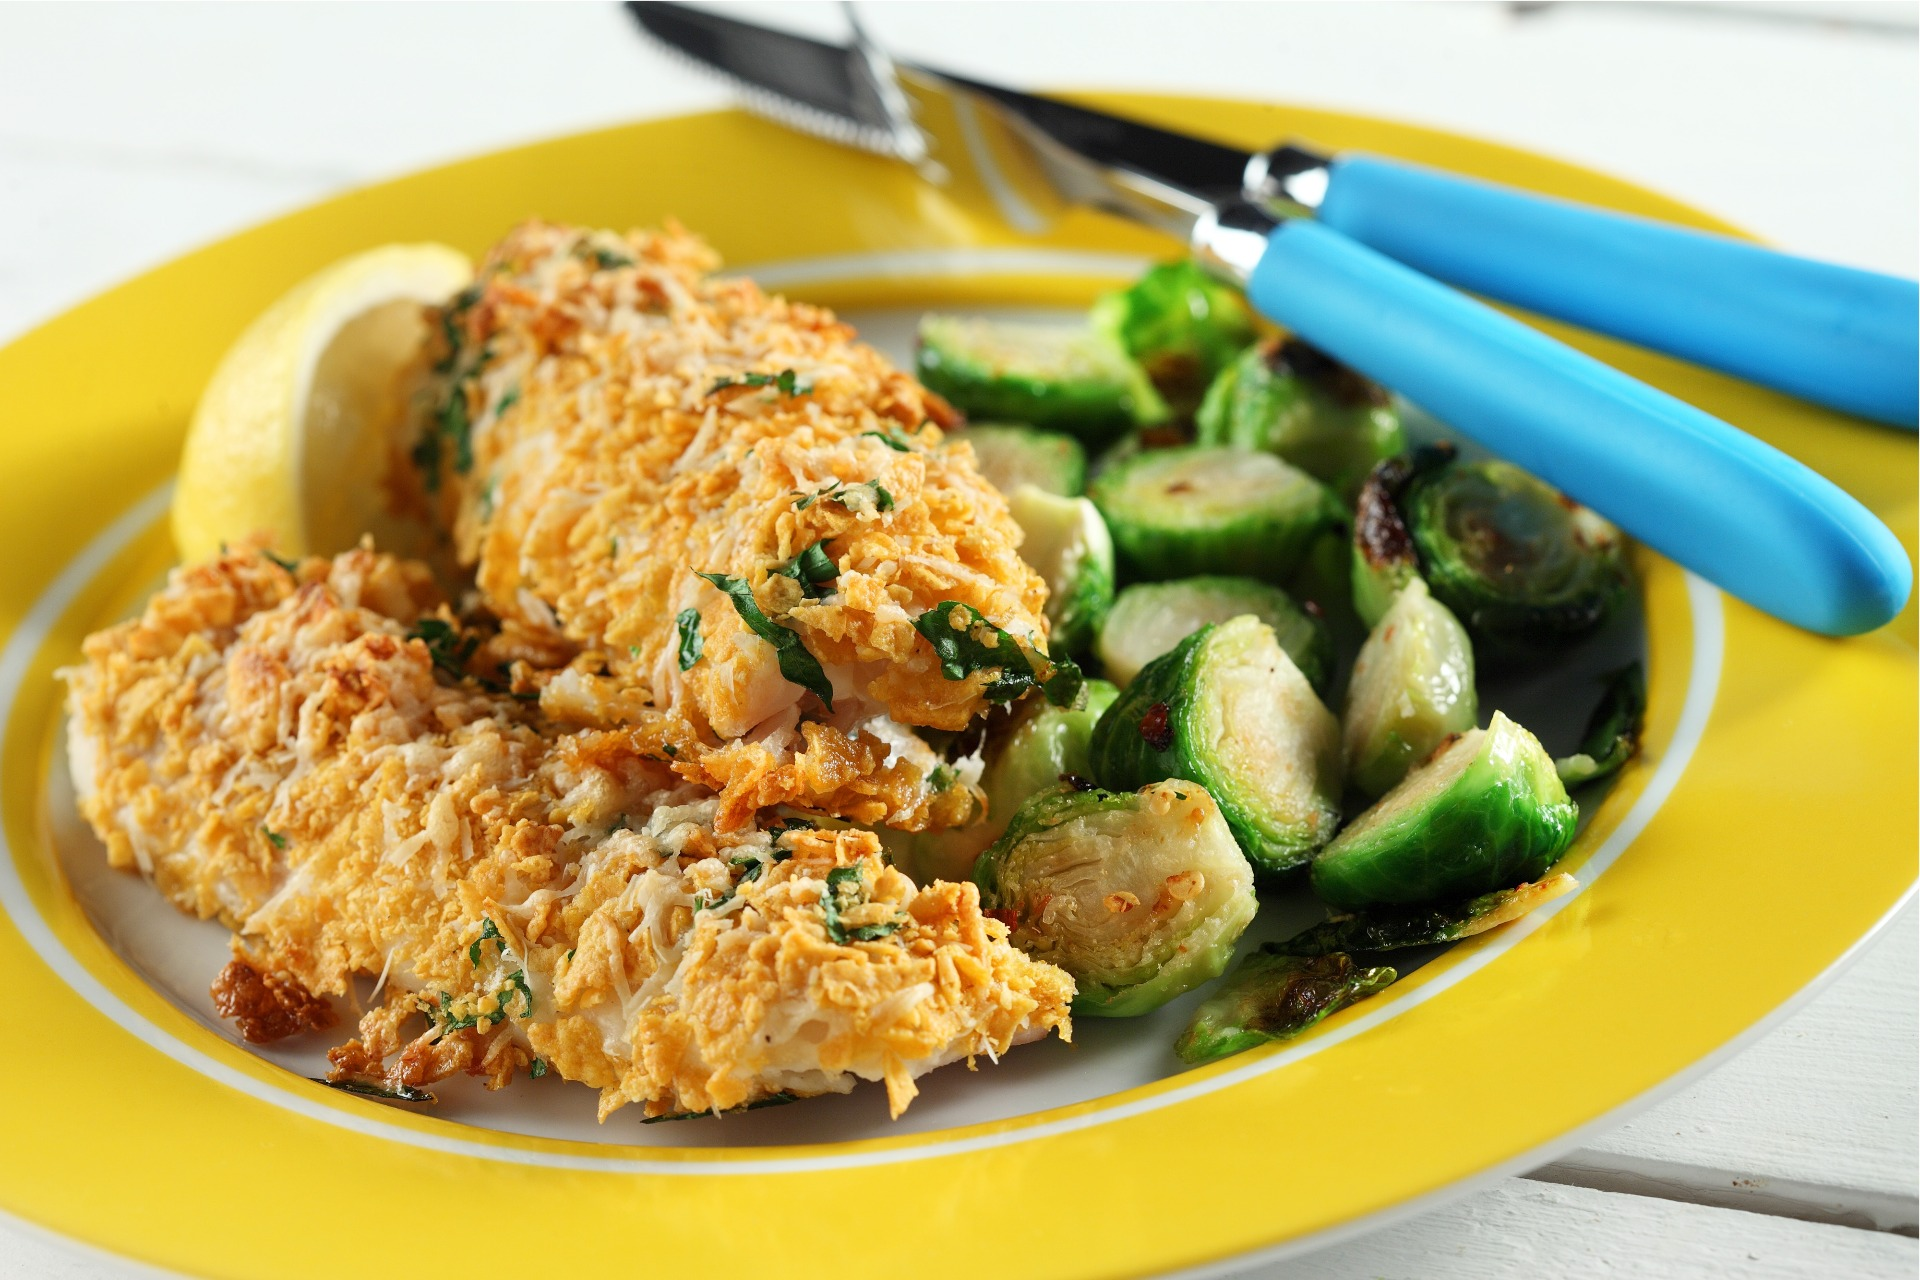 Plate with two pieces of battered halibut fillets, cooked brussel sprouts and sliced lemon wedge